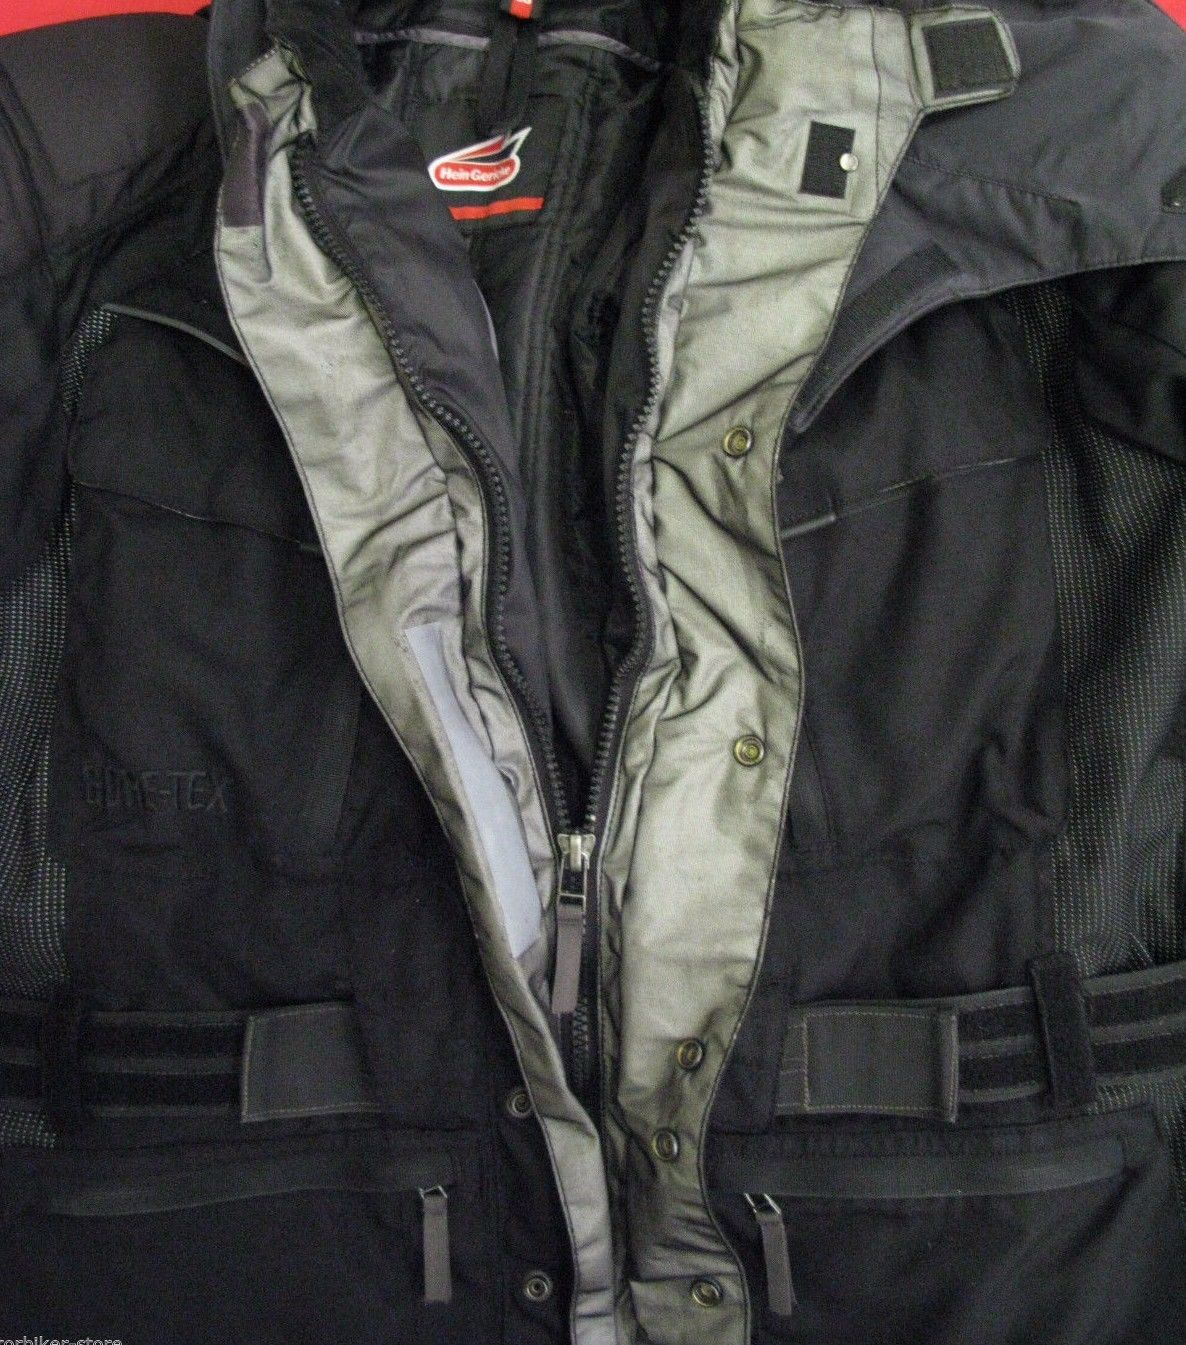 "Gore Tex Motorcycle Jacket ... GERICKE CRUISE GORETEX CORDURA MOTORCYCLE JACKET UK 44"" Chest EU 54 XL"